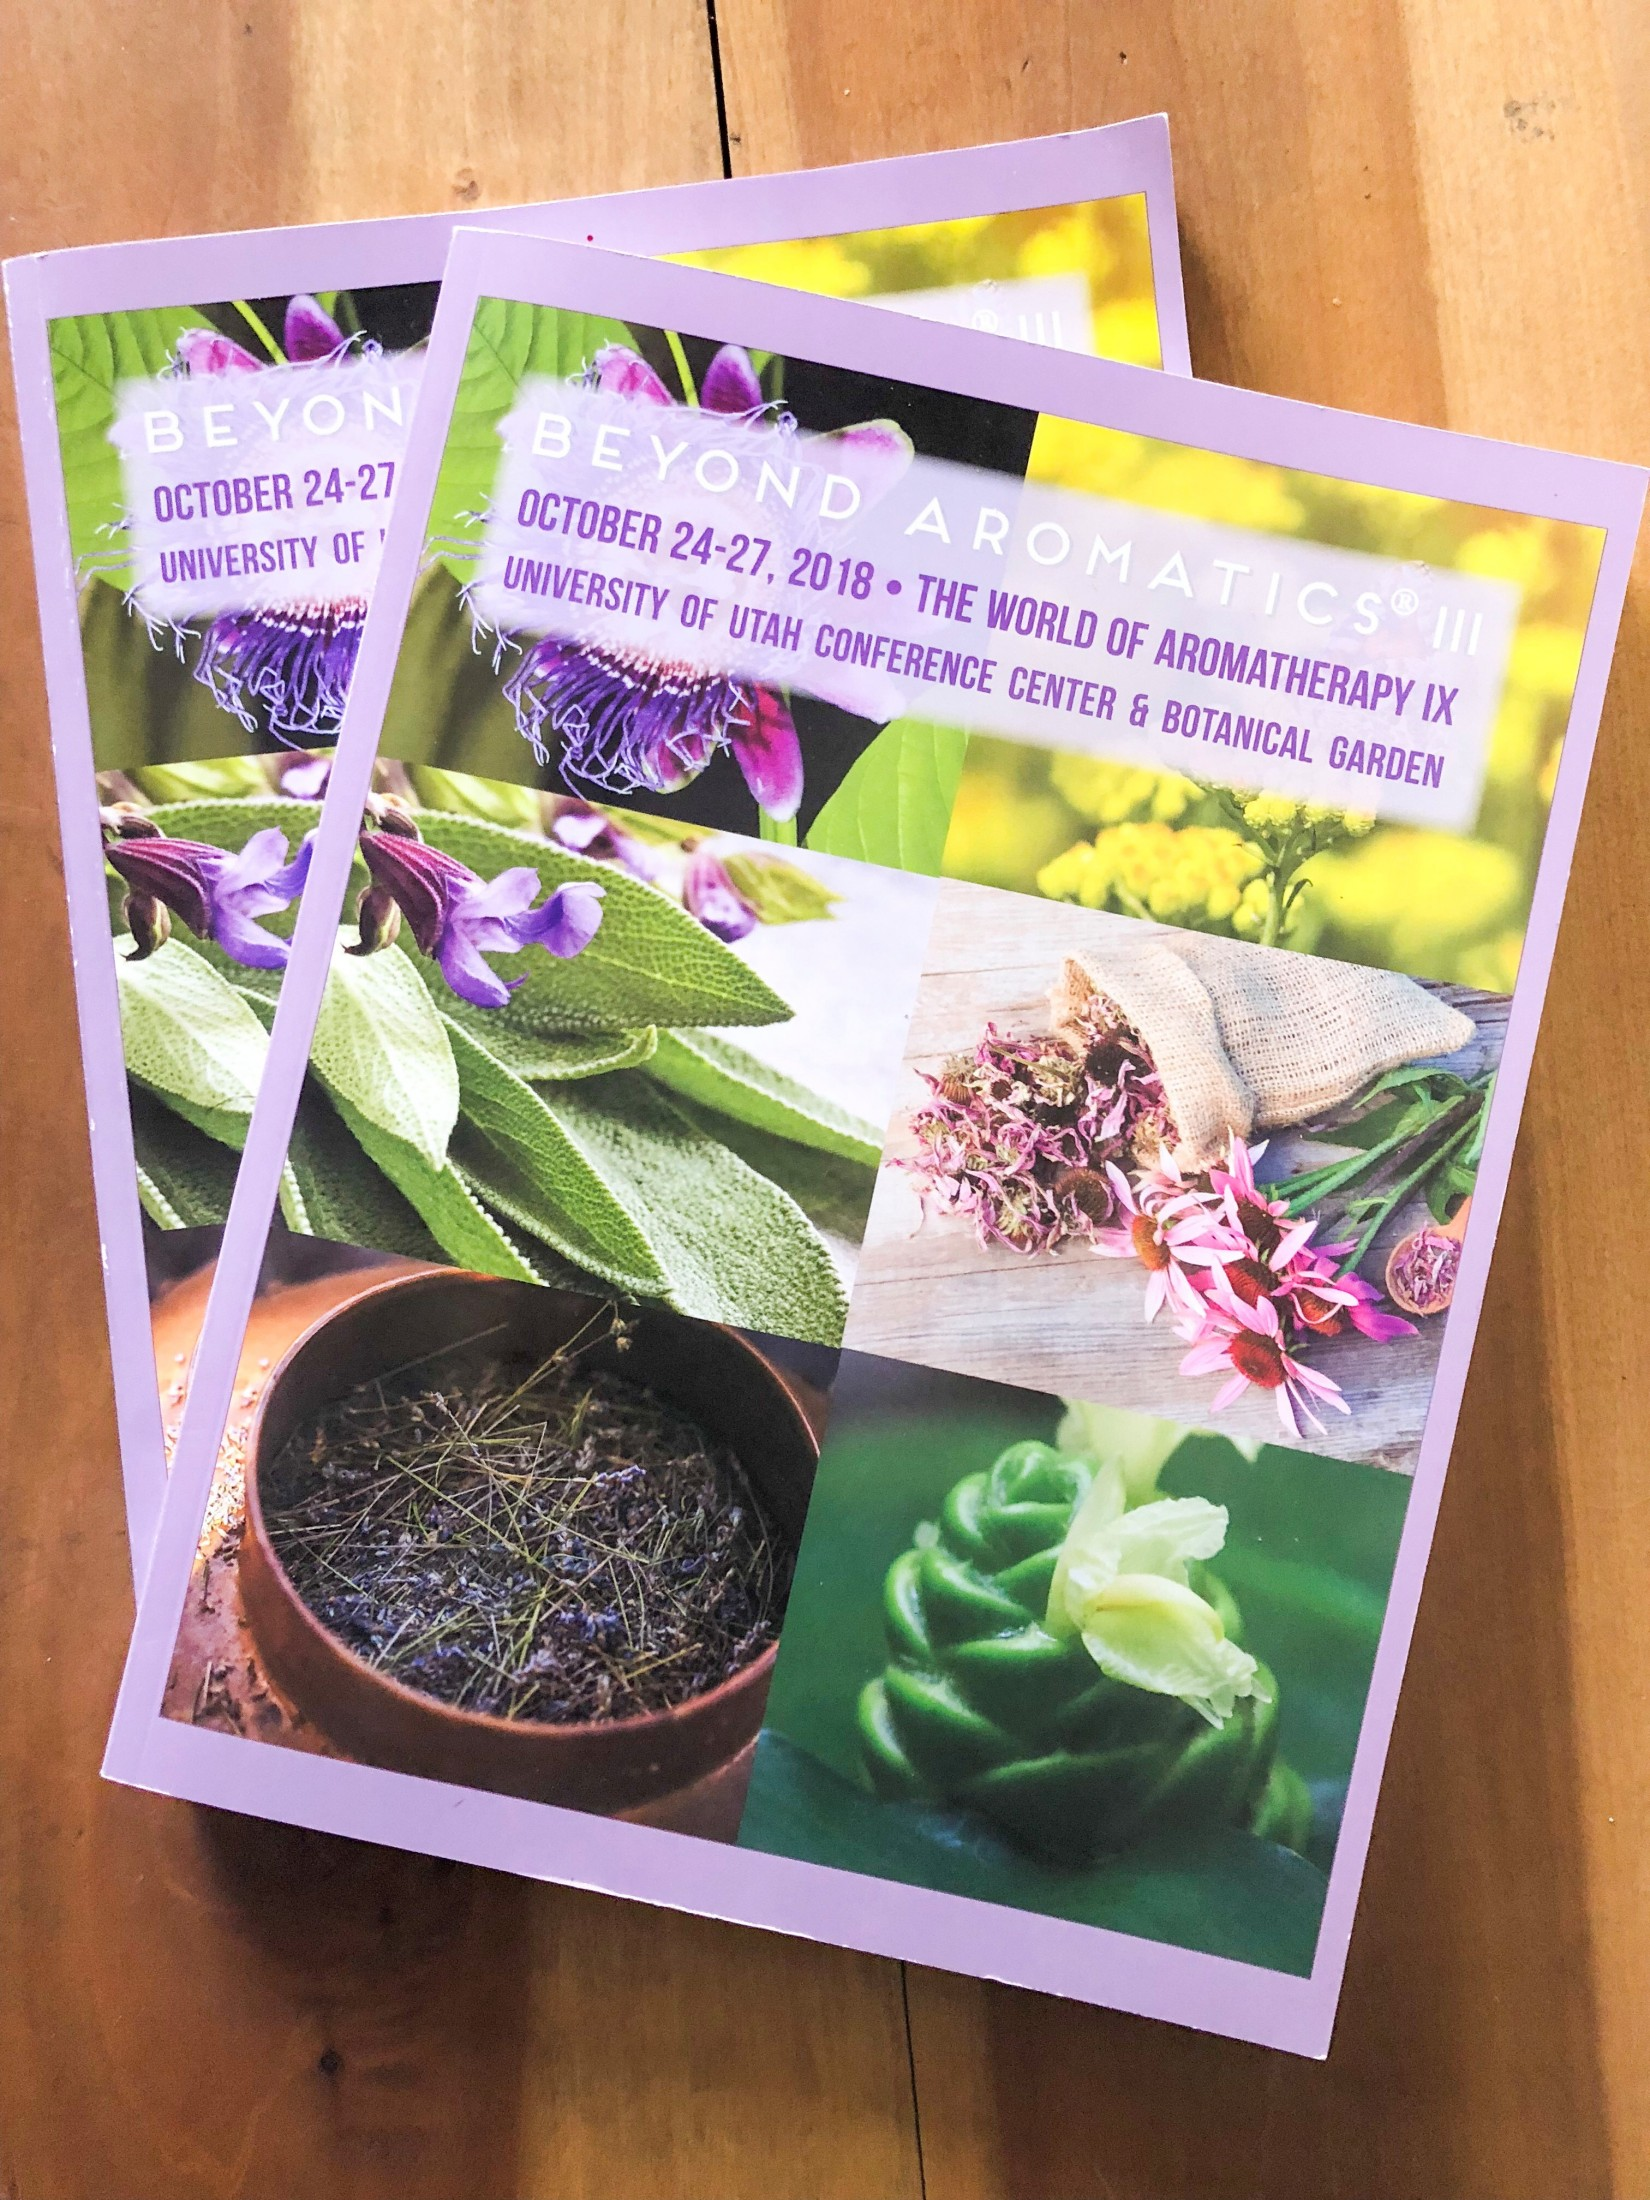 2018 Beyond Aromatics Conference Proceedings Book